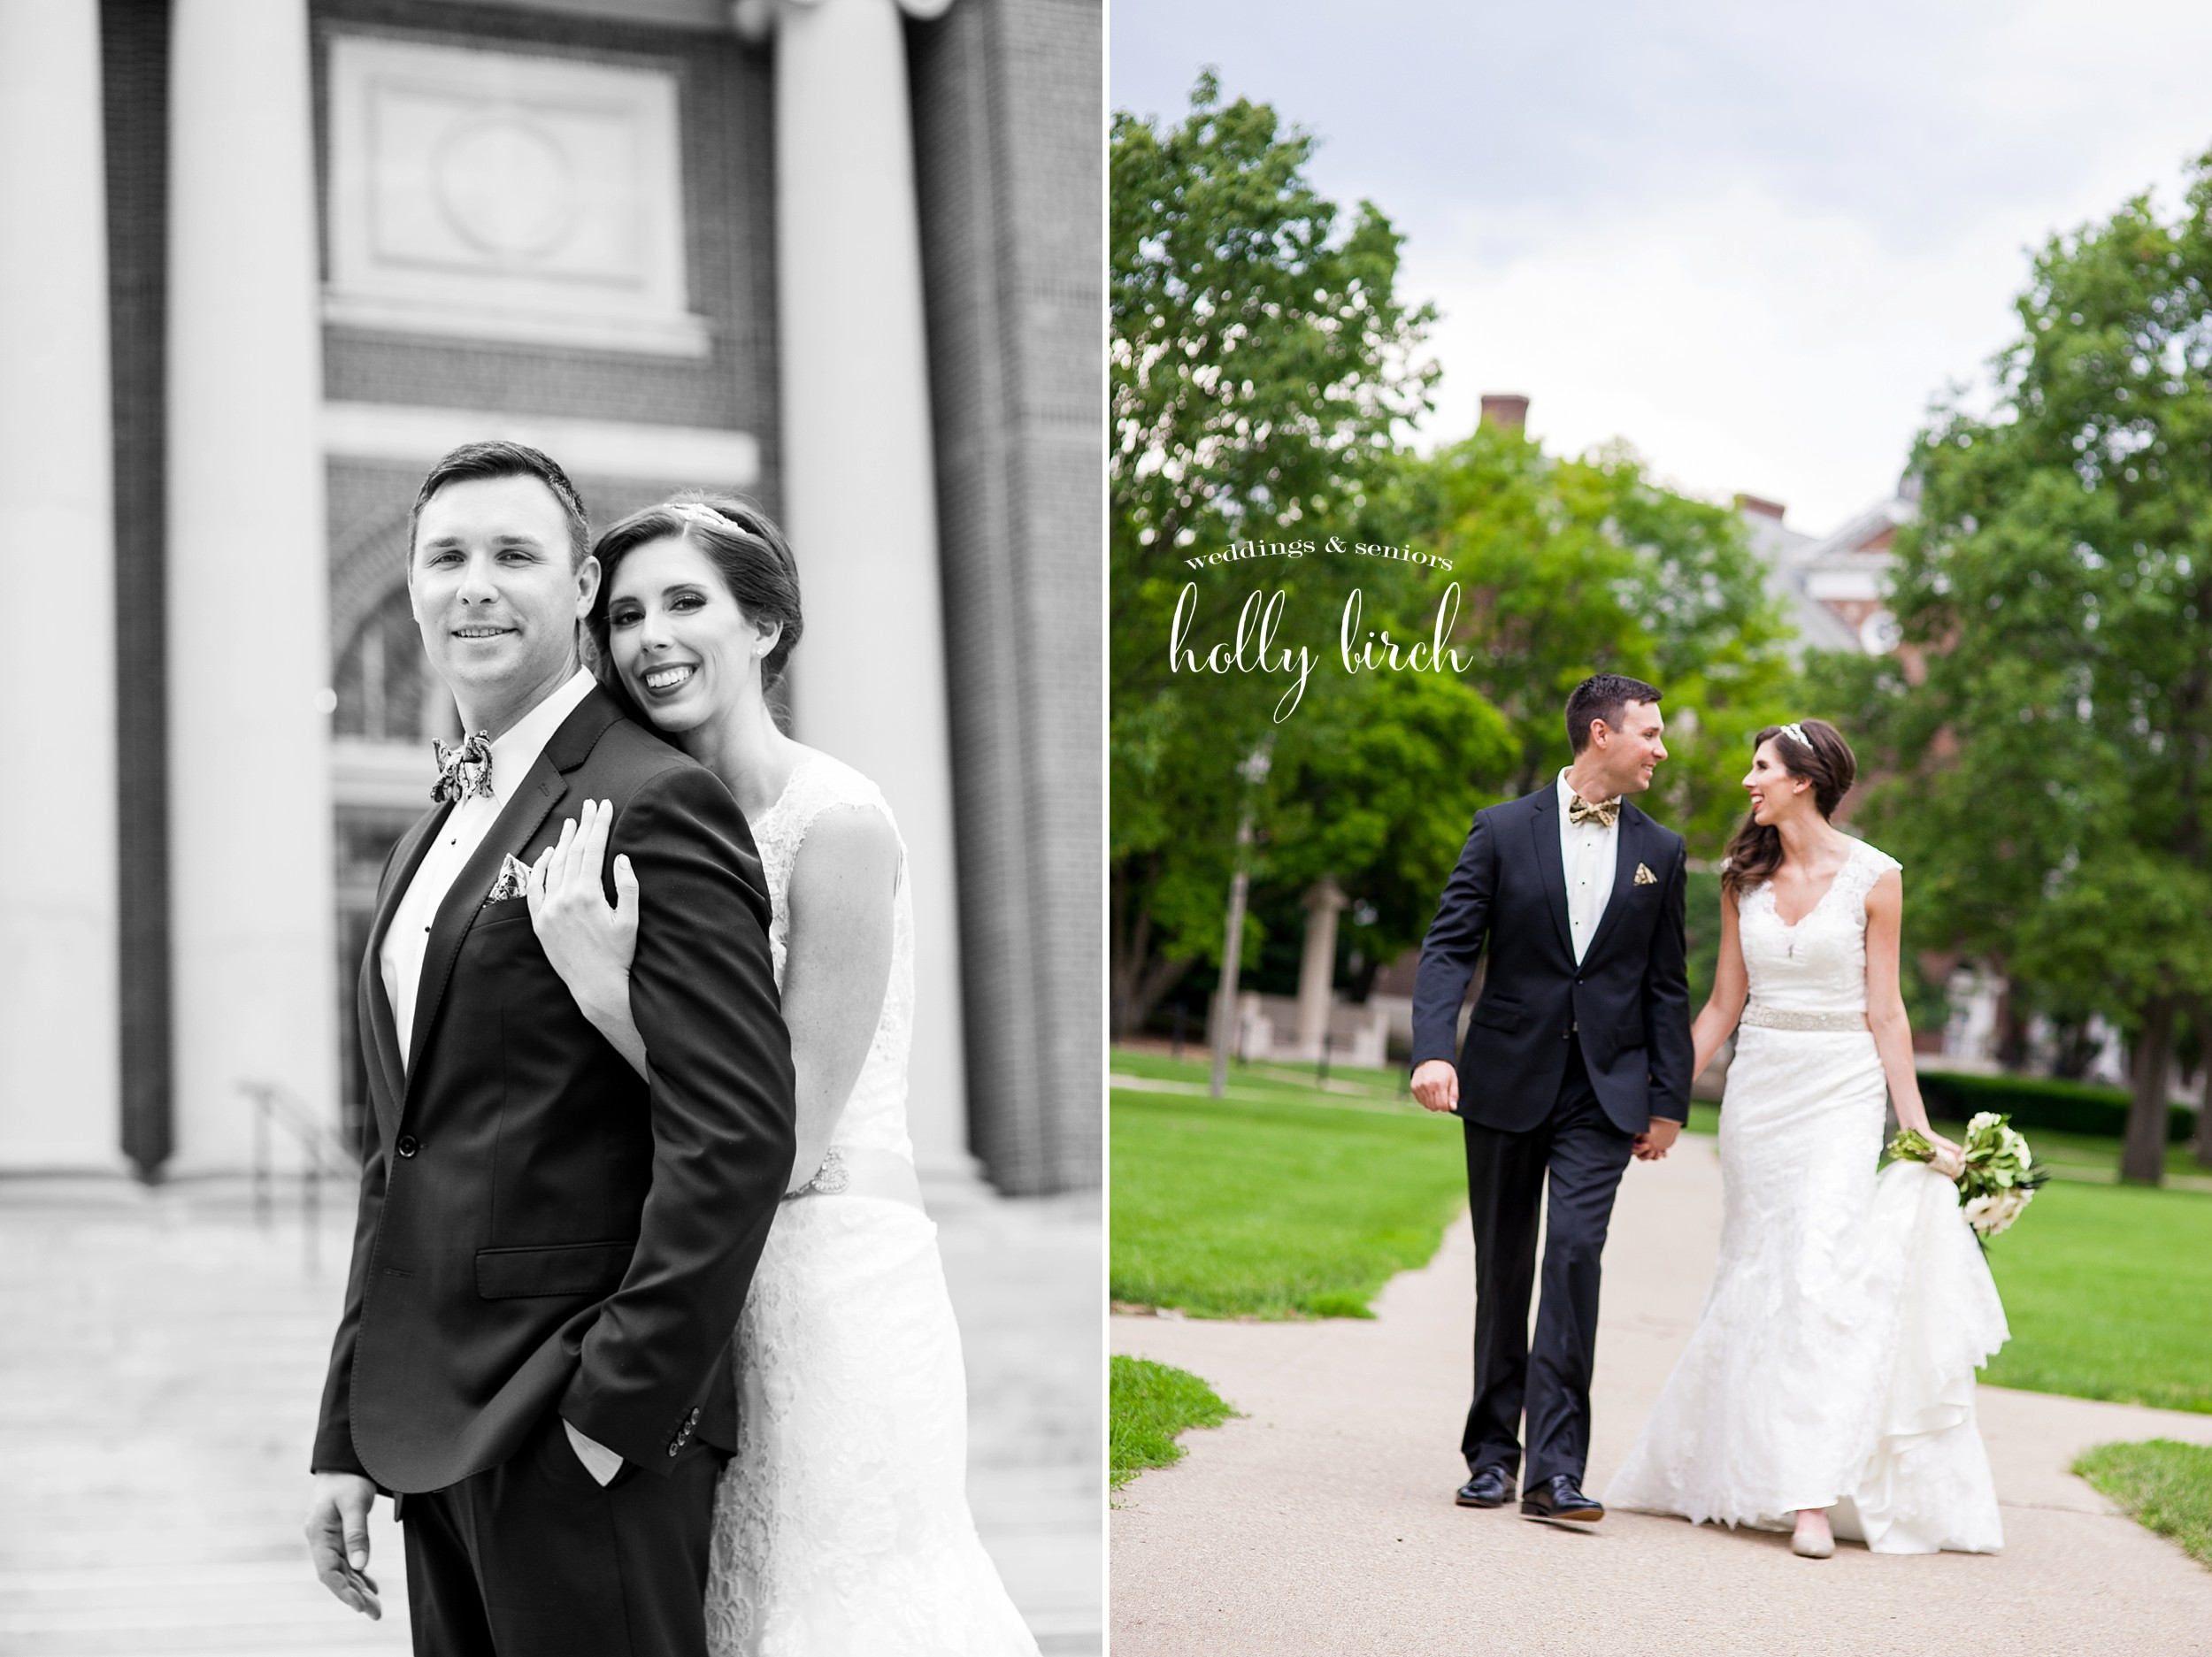 lovely wedding portraits